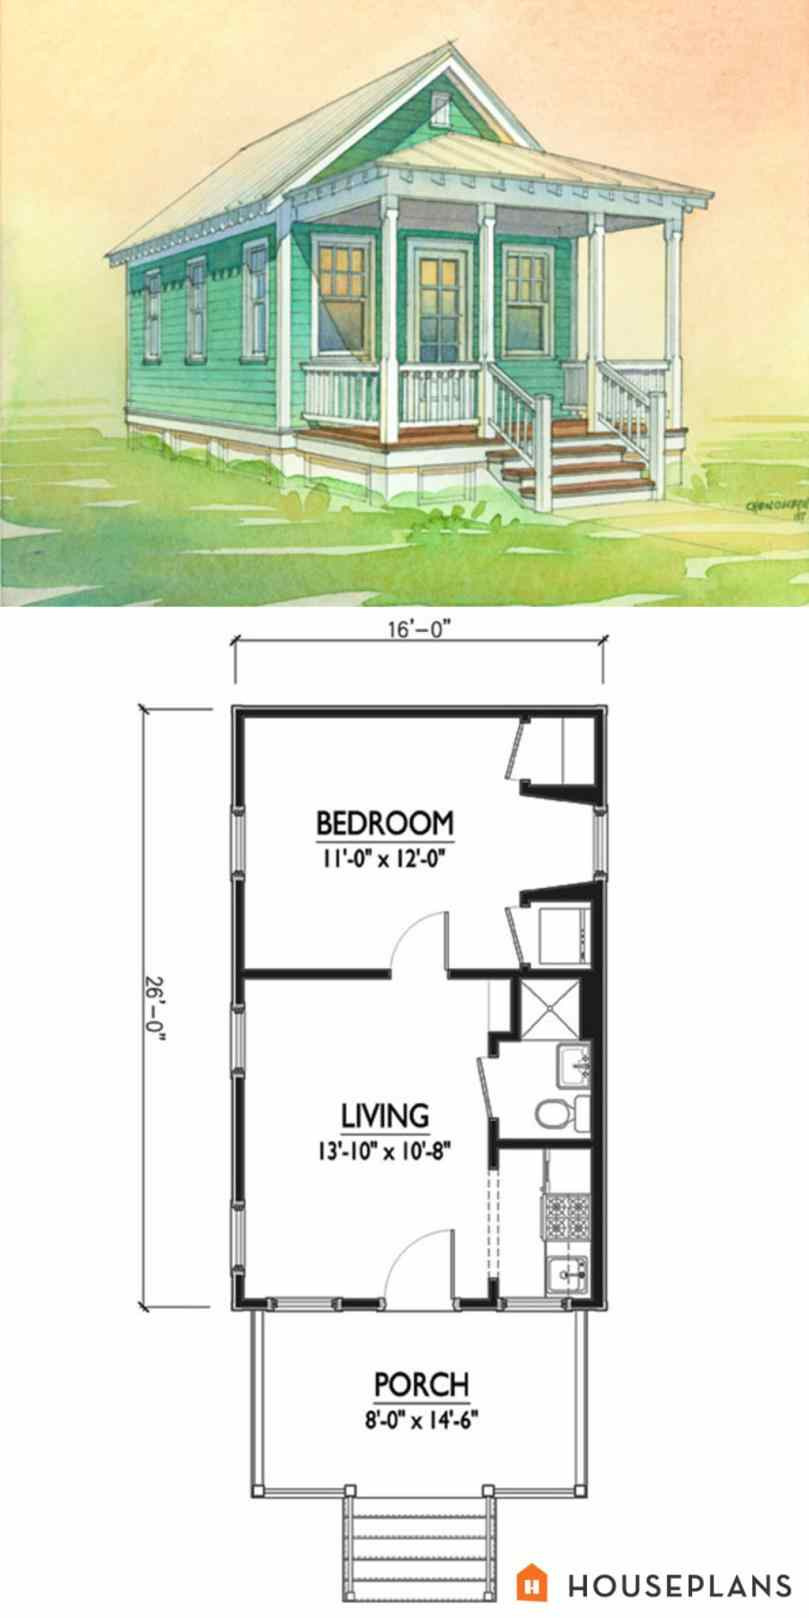 Small House Building Plans Inspirational Tiny House Floor Plans 10x12 Architectural Designs Cafe